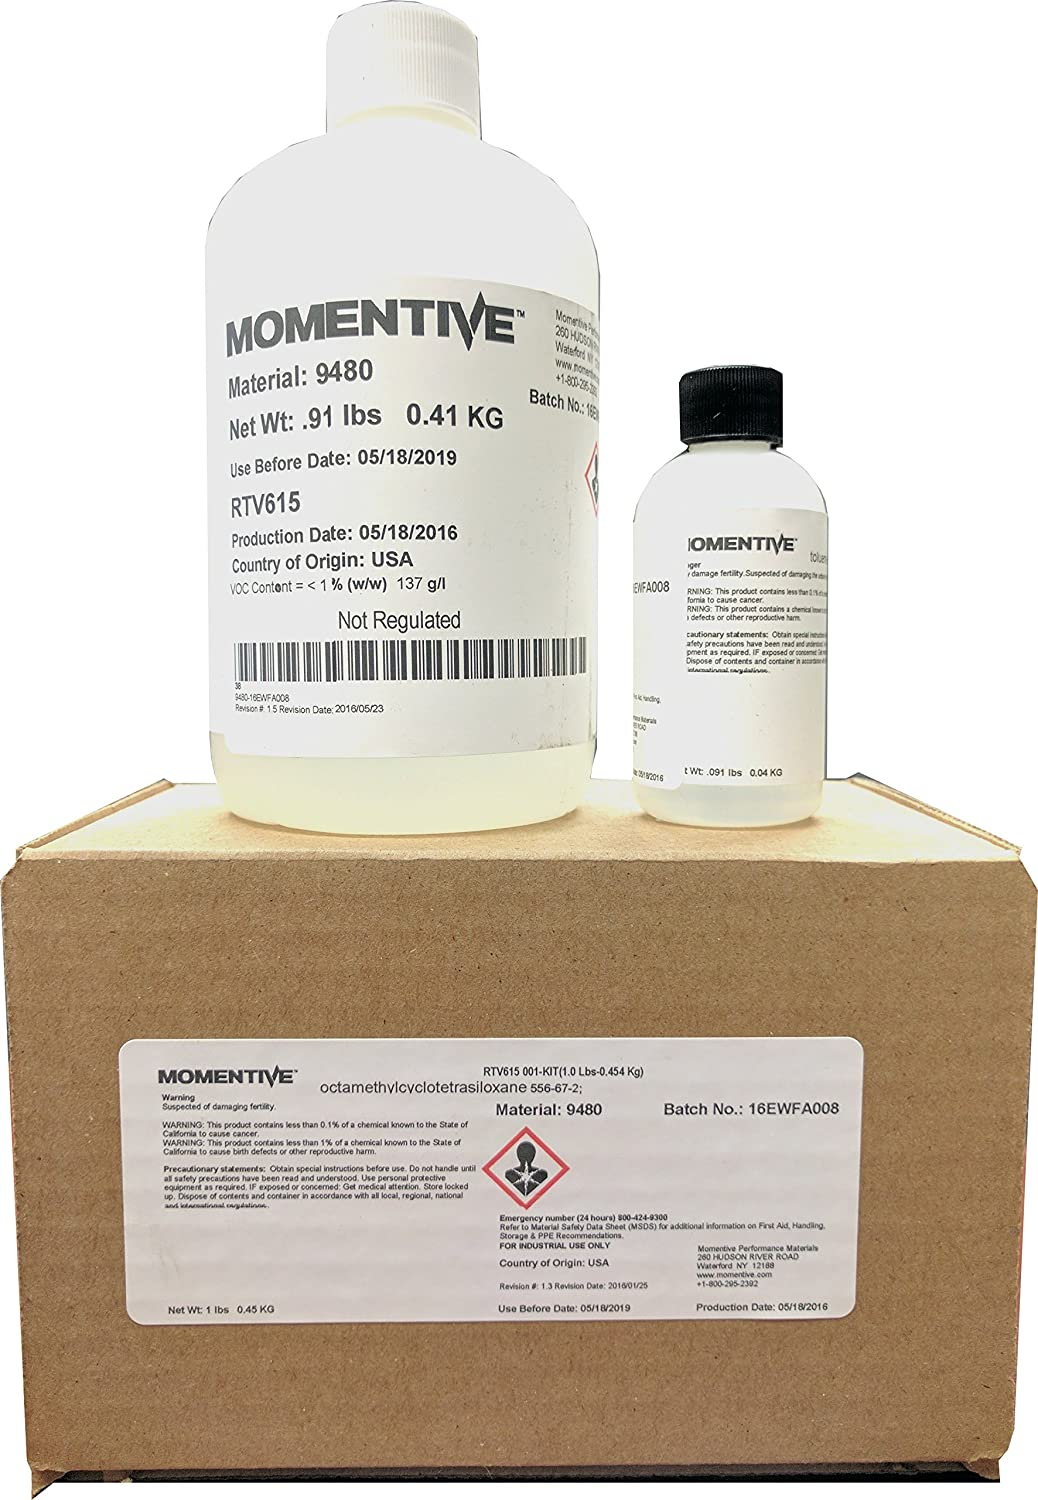 Image of MOMENTIVE RTV615 Two-Part High Strength Silicone Rubber Compound Kit, 500V/mil Dielectric Strength, Clear, 1 lb. kit, Bottles Coatings